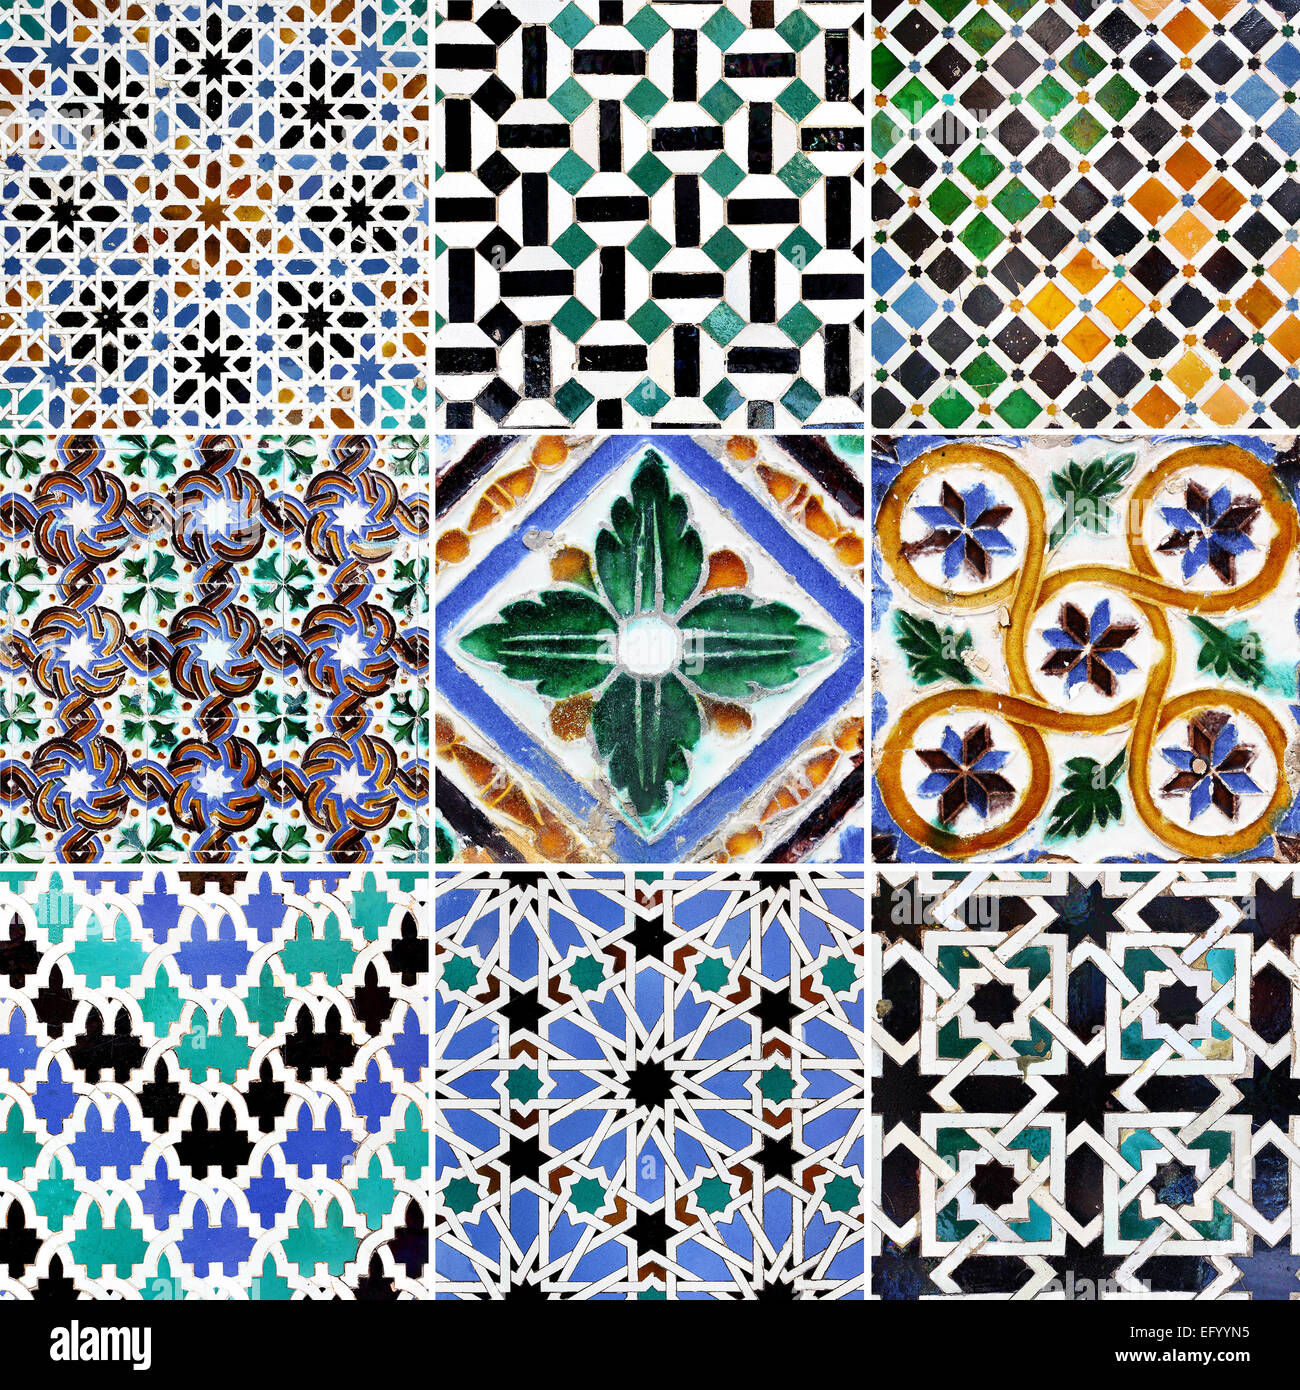 Spanish Tile Simple Stock Photos & Spanish Tile Simple Stock Images ...